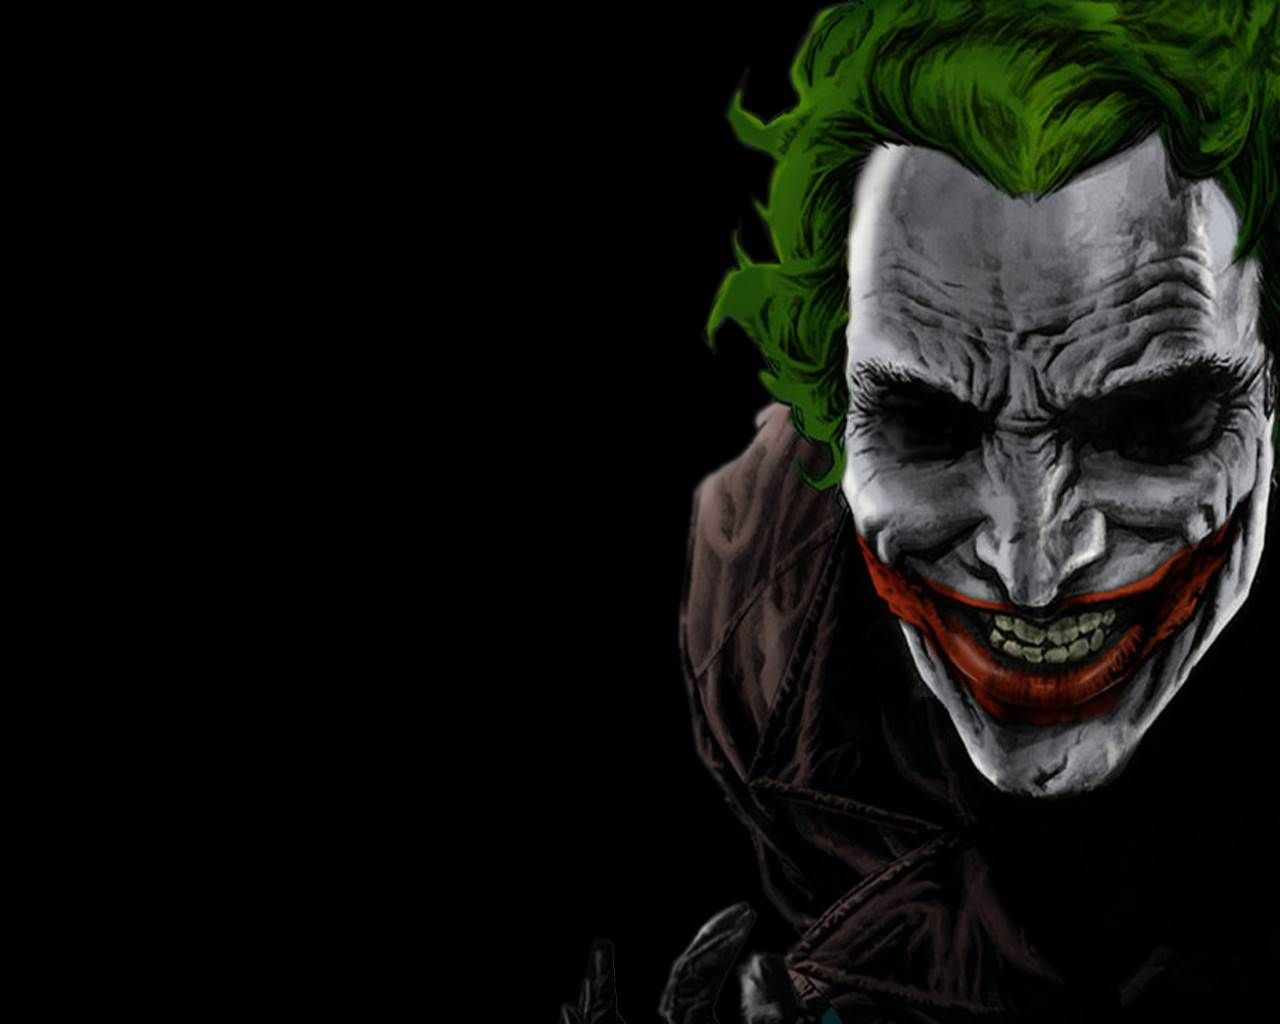 joker wallpapers high quality download free 1280×1024 joker images